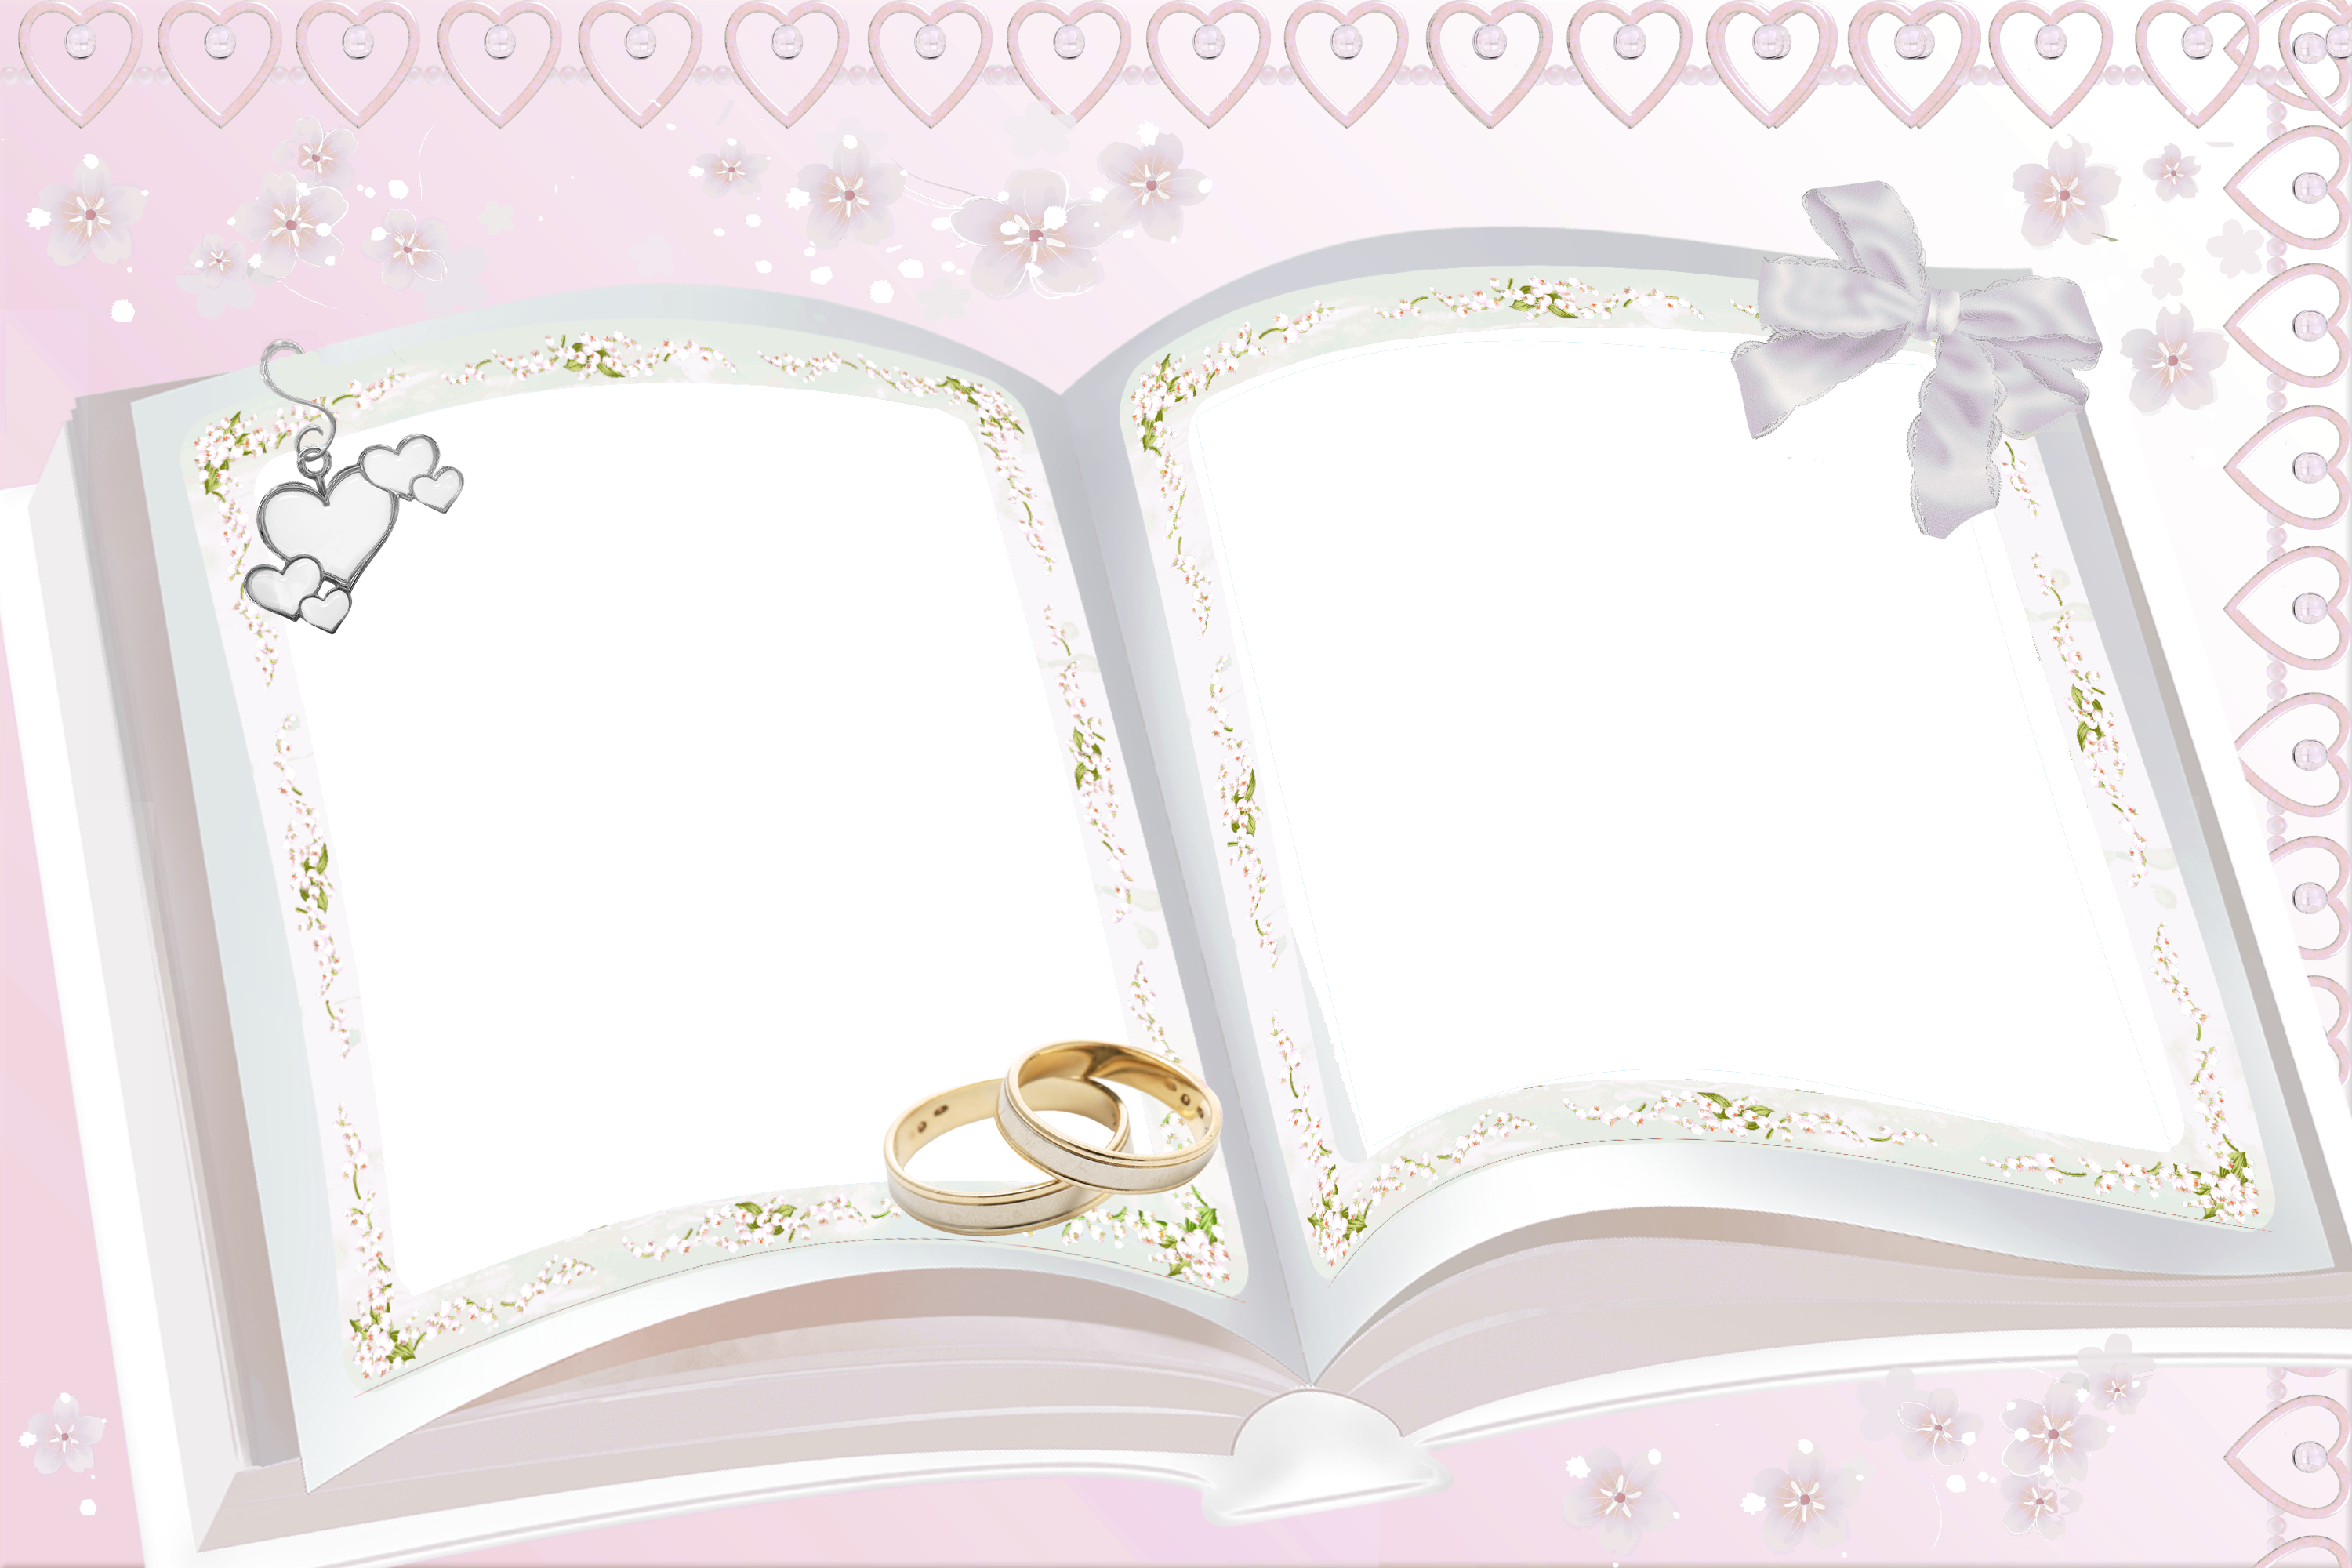 Transparent Pink Wedding Frame